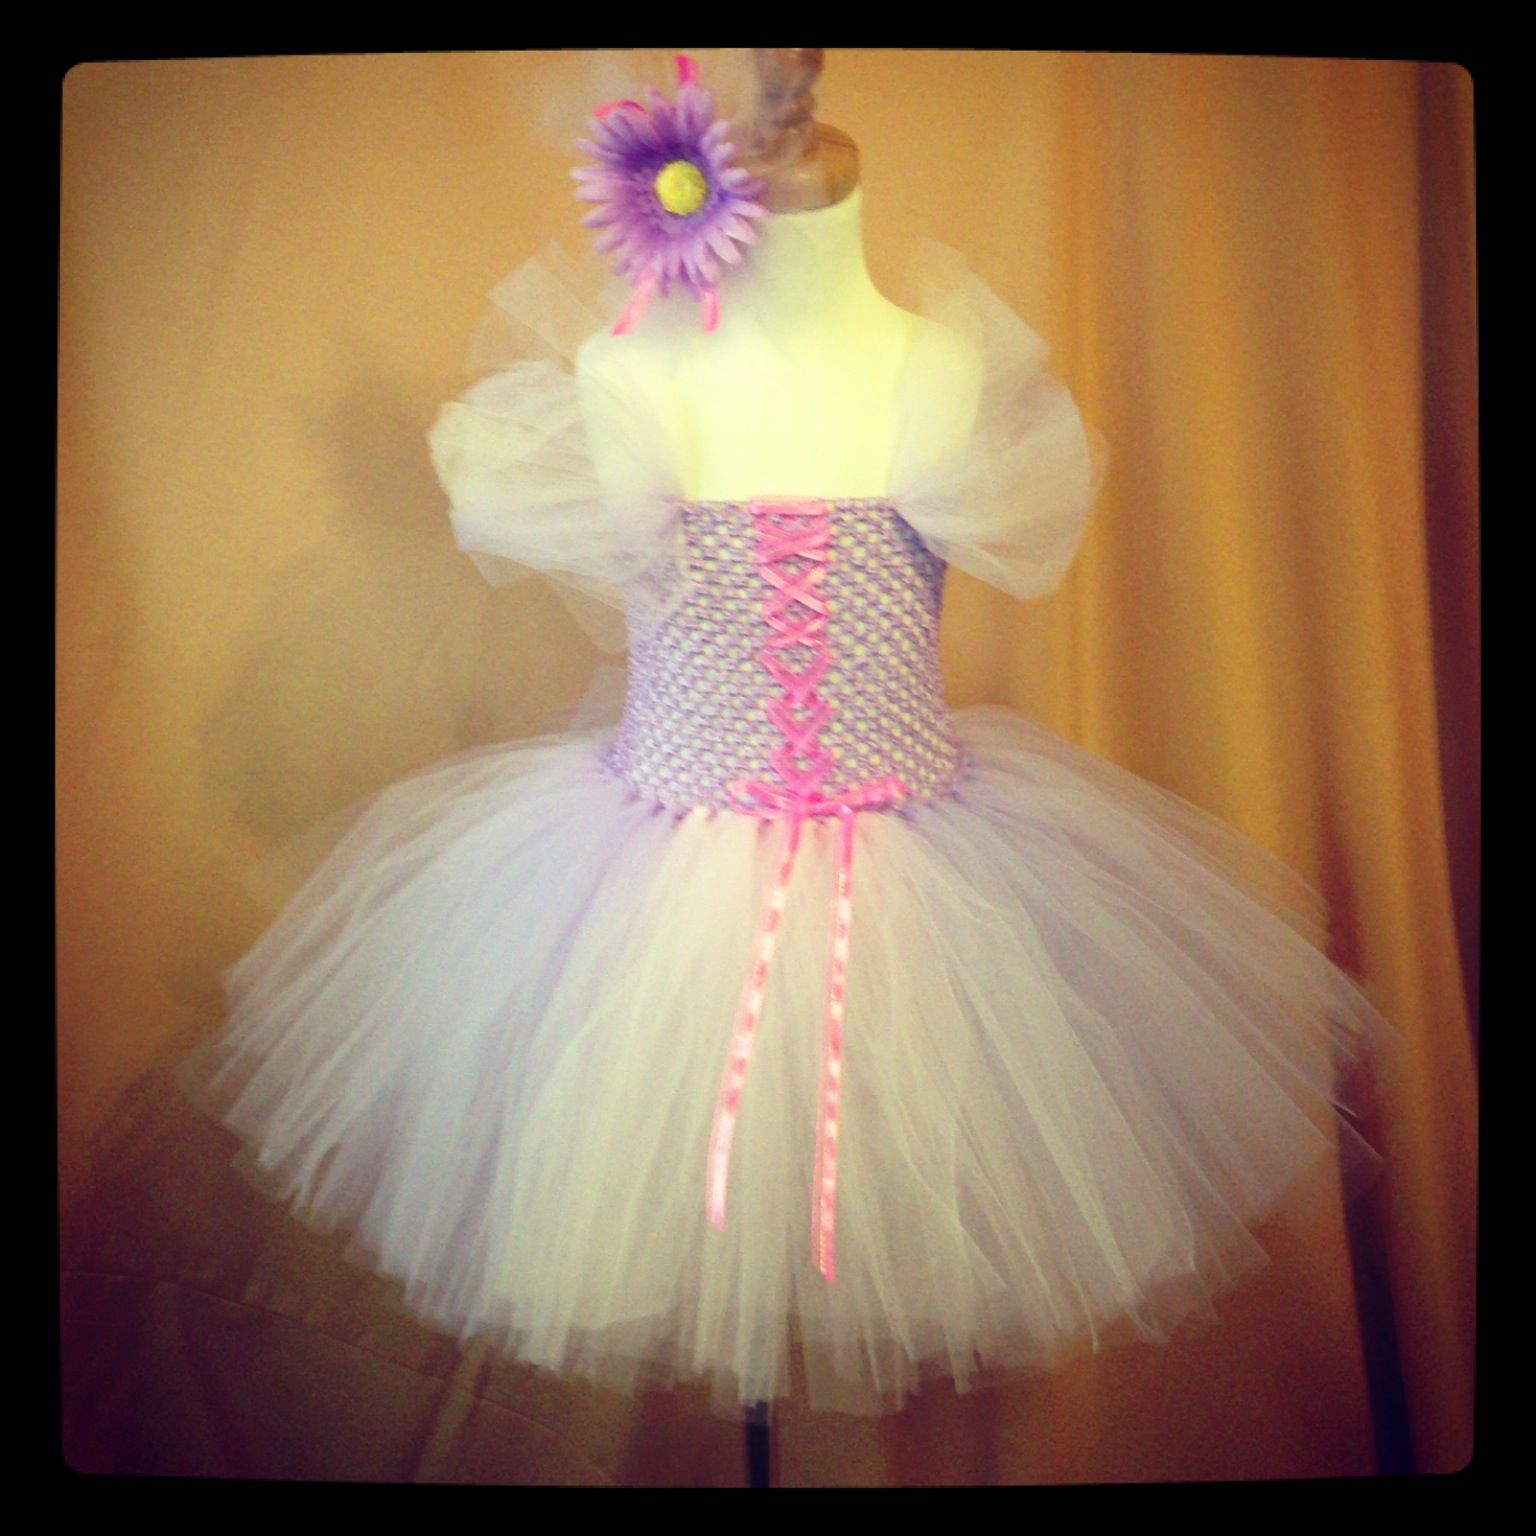 Rapunzel. Two Girls Tutus and Scarves. Find us on Facebook. Will be opening an etsy store soon.